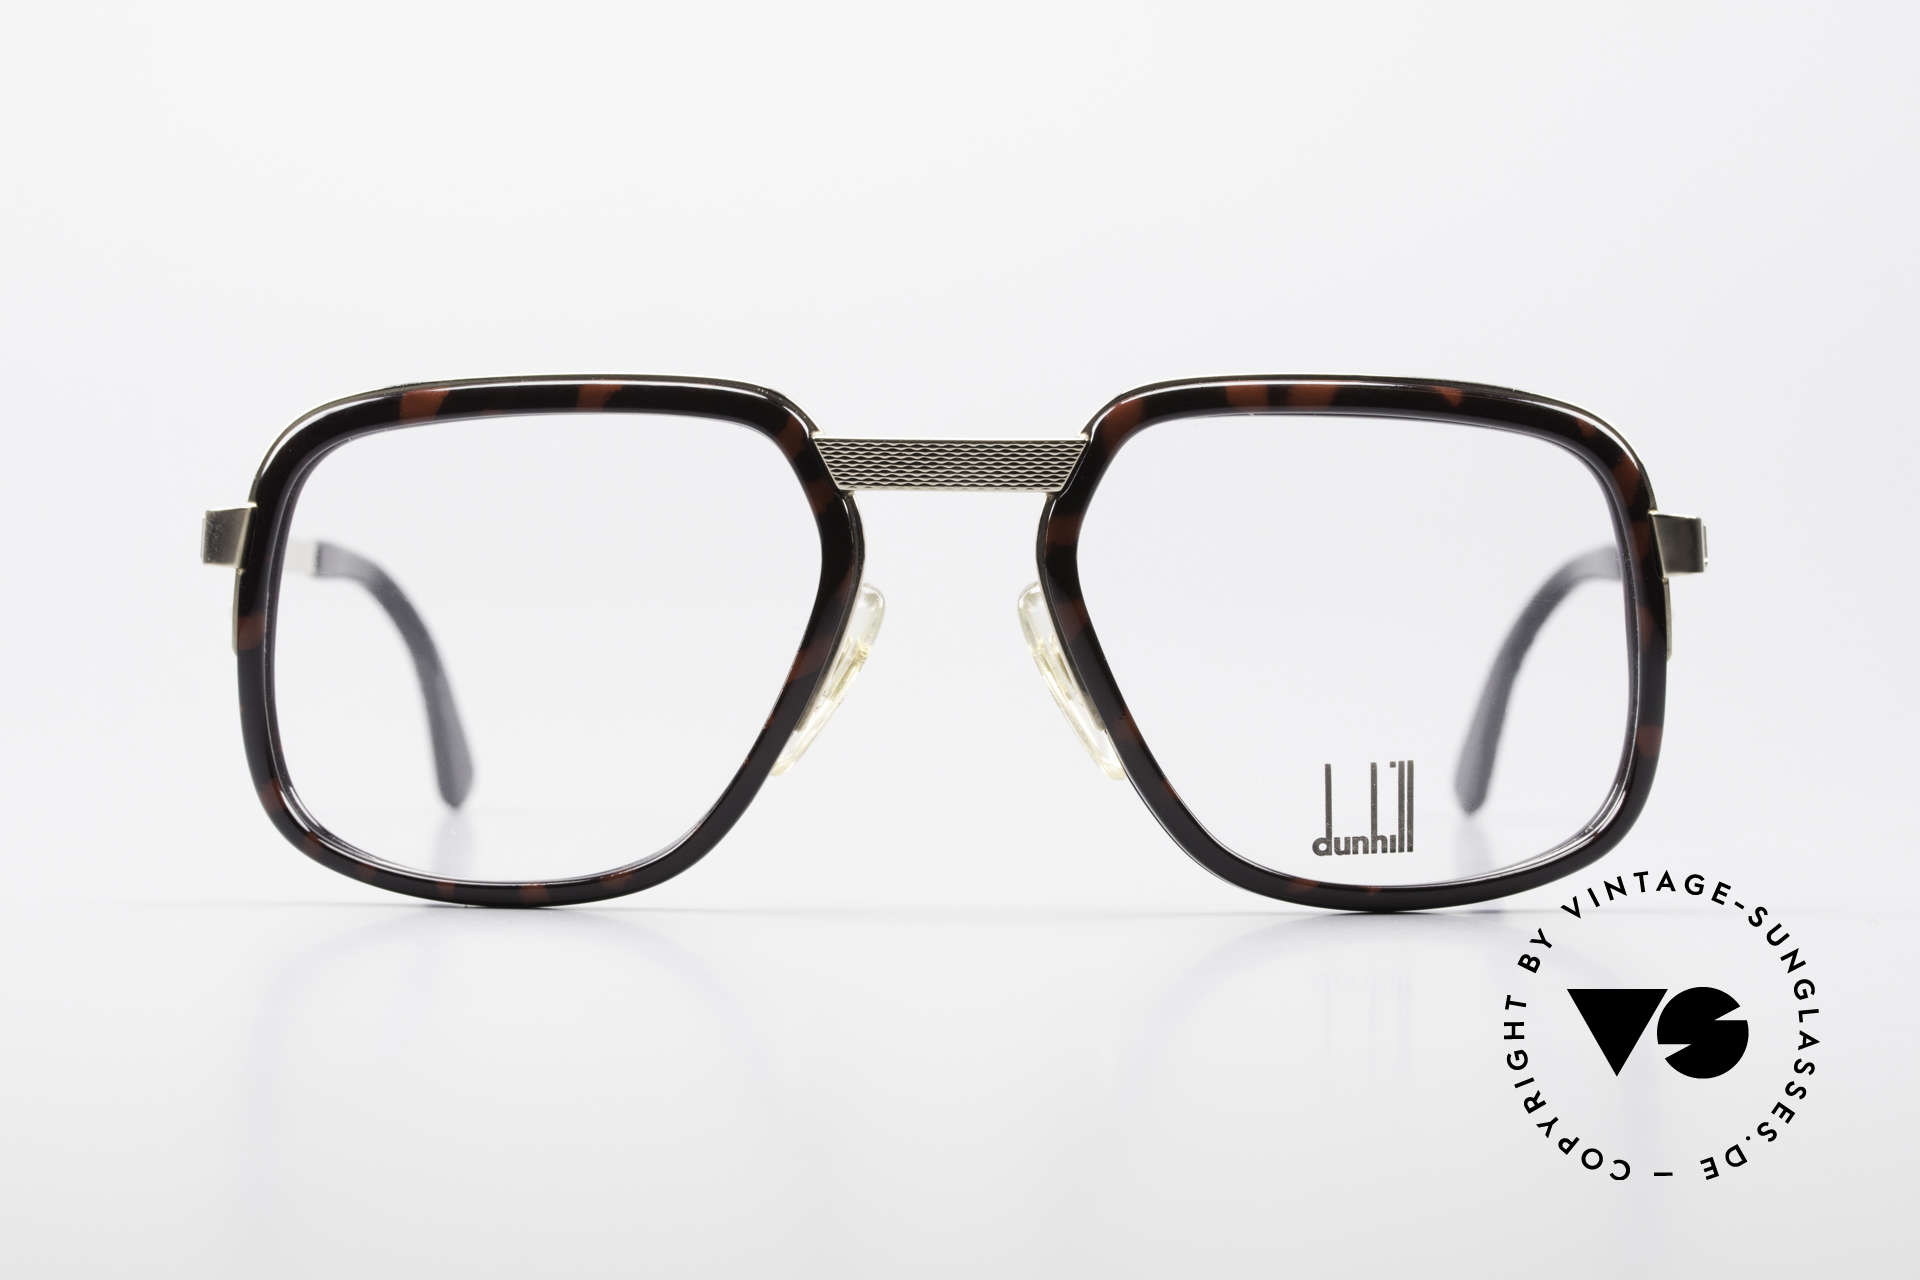 Dunhill 6073 Gold Plated 80's Men's Glasses, striking Alfred Dunhill vintage eyeglasses from 1989, Made for Men